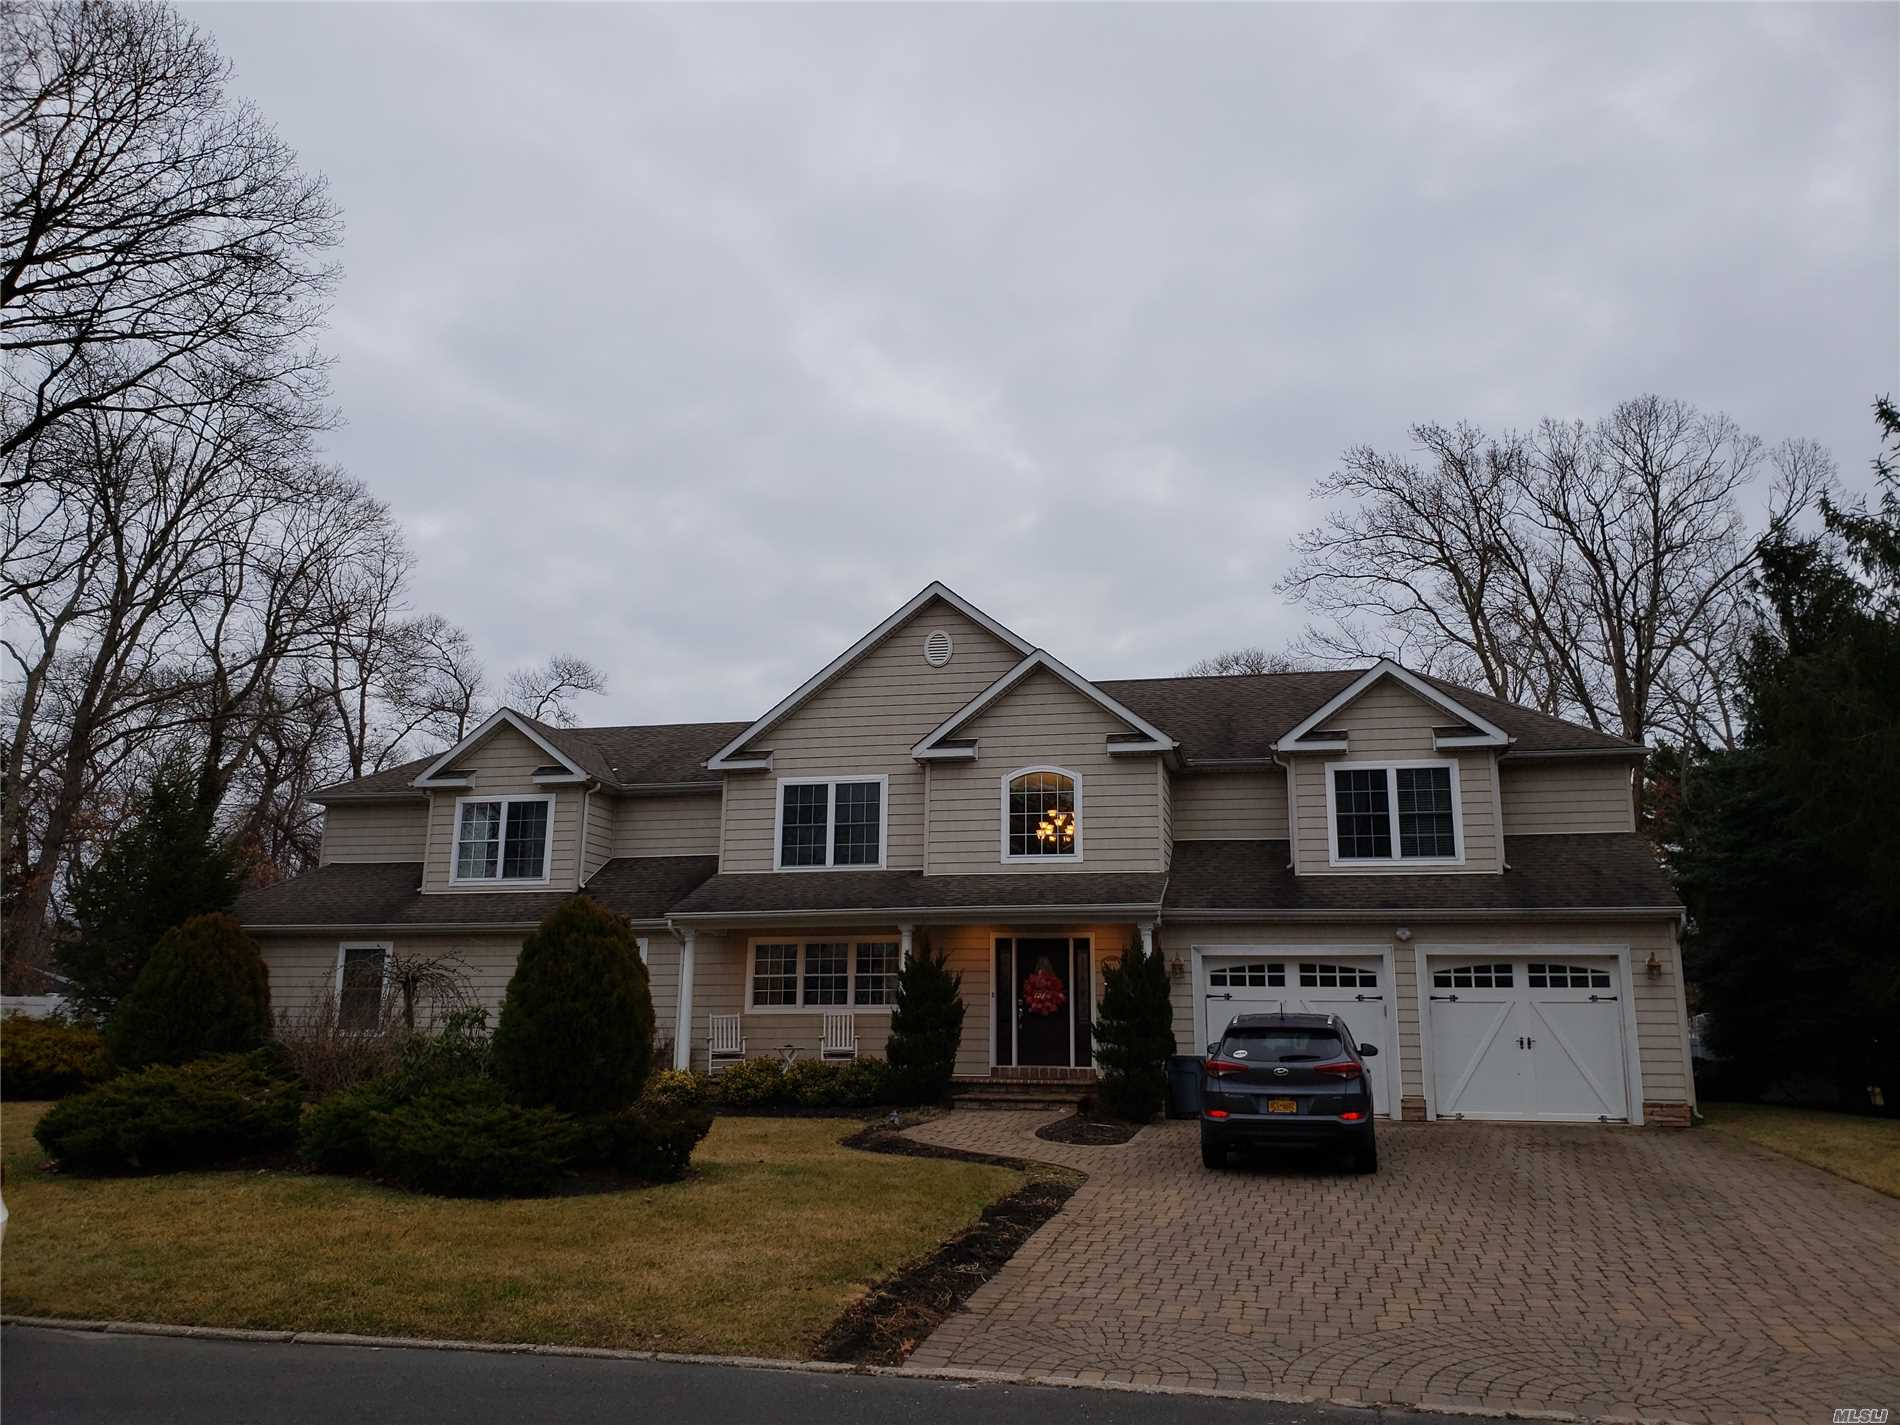 Beautiful Large 5 Bedroom Colonial With 3/4 Acre Lot And Ig Pool On Cul De Sac, Gourmet Kitchen With Stainless Appliances, Greatroom With Stone Fireplace, Separate Suite For Mom(W/ Proper Permits Needed) Too Much To List... Won't Last $750, 000